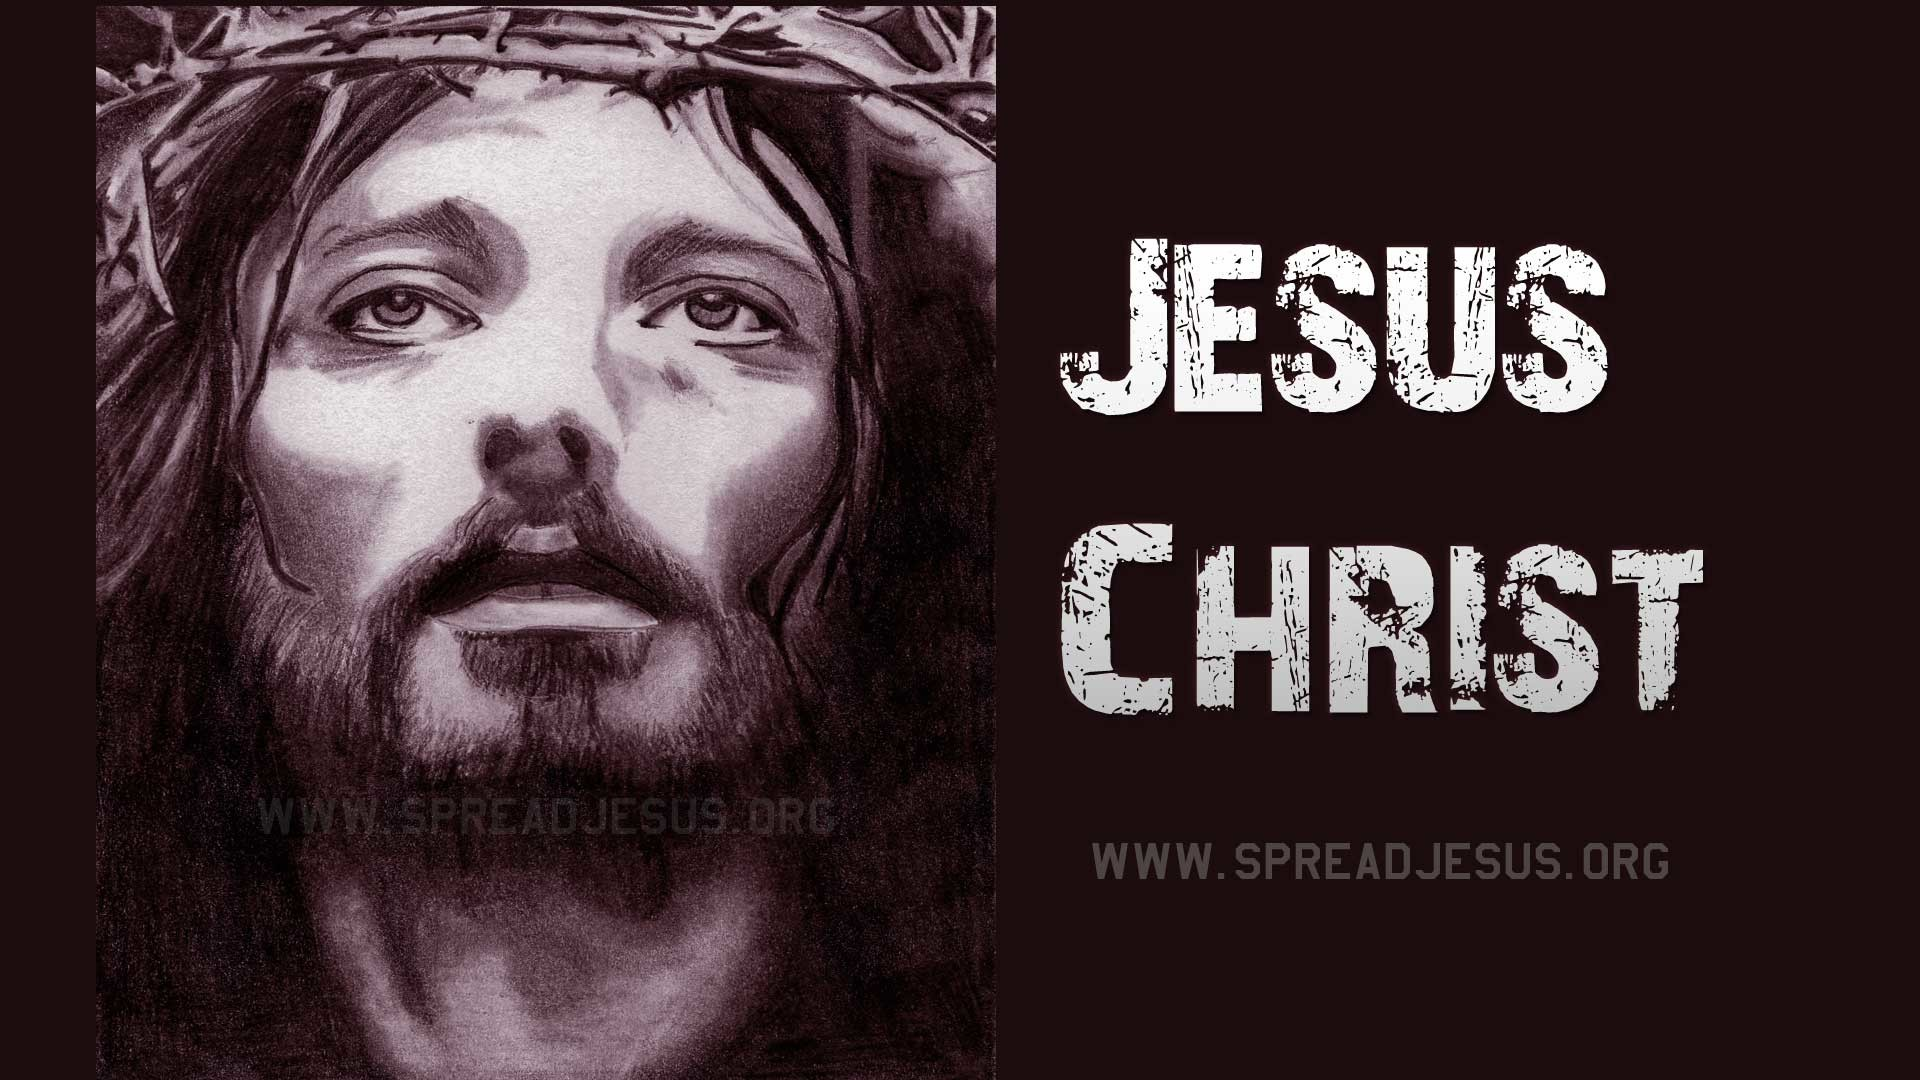 christion wallpapers:HD wallpapers of jesus christ-spreadjesus.org .